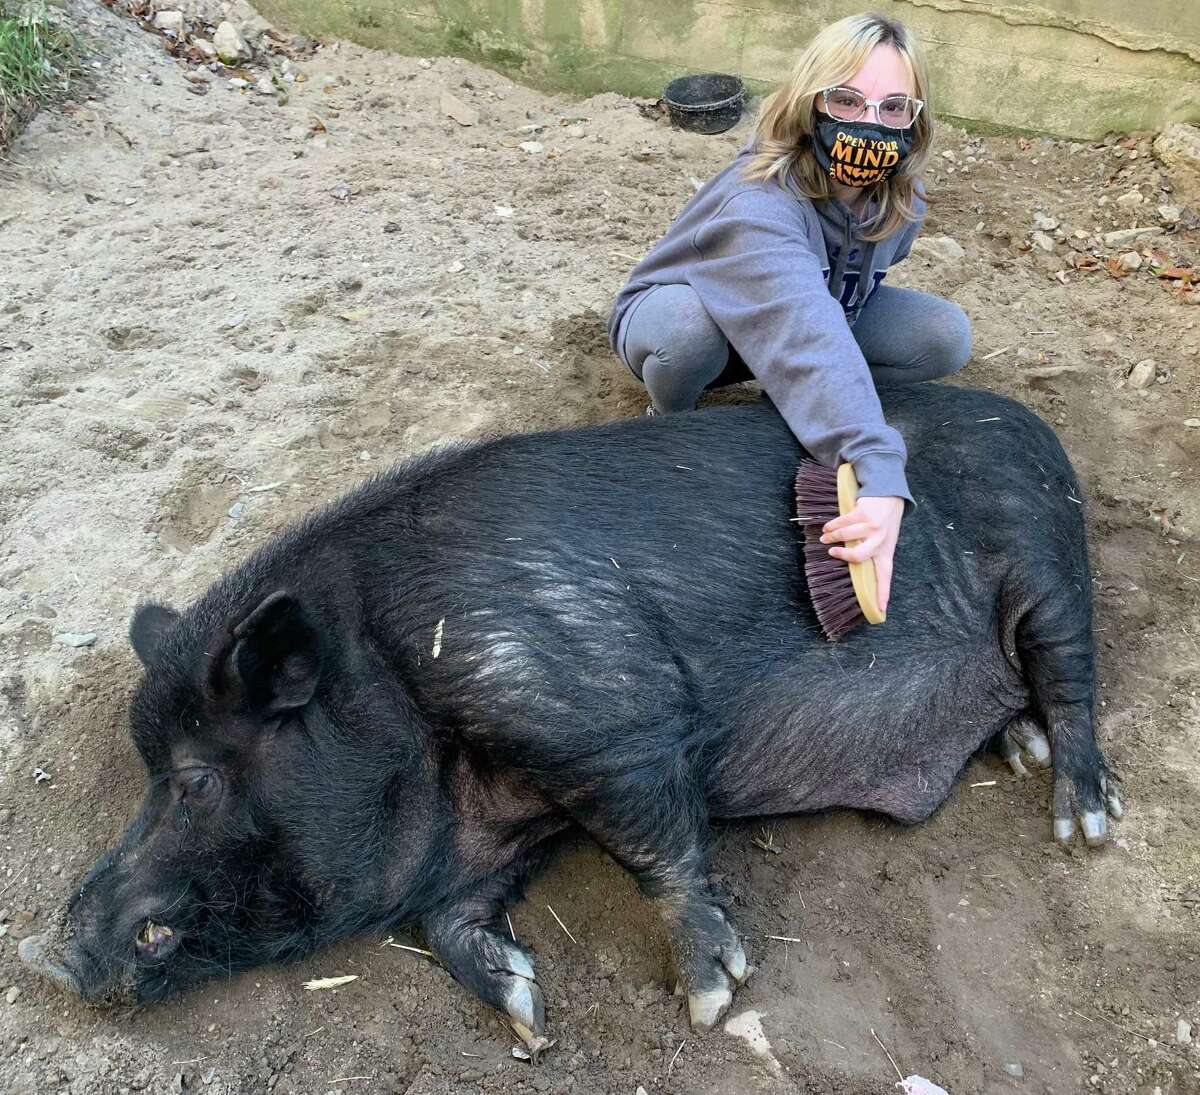 """Hamton J. Pig, Connecticut's Beardsley Zoo's 14-year-old male Guinea hog, died July 17, 2021 due to """"causes related to his advanced age,"""" according to a news release from the zoo."""